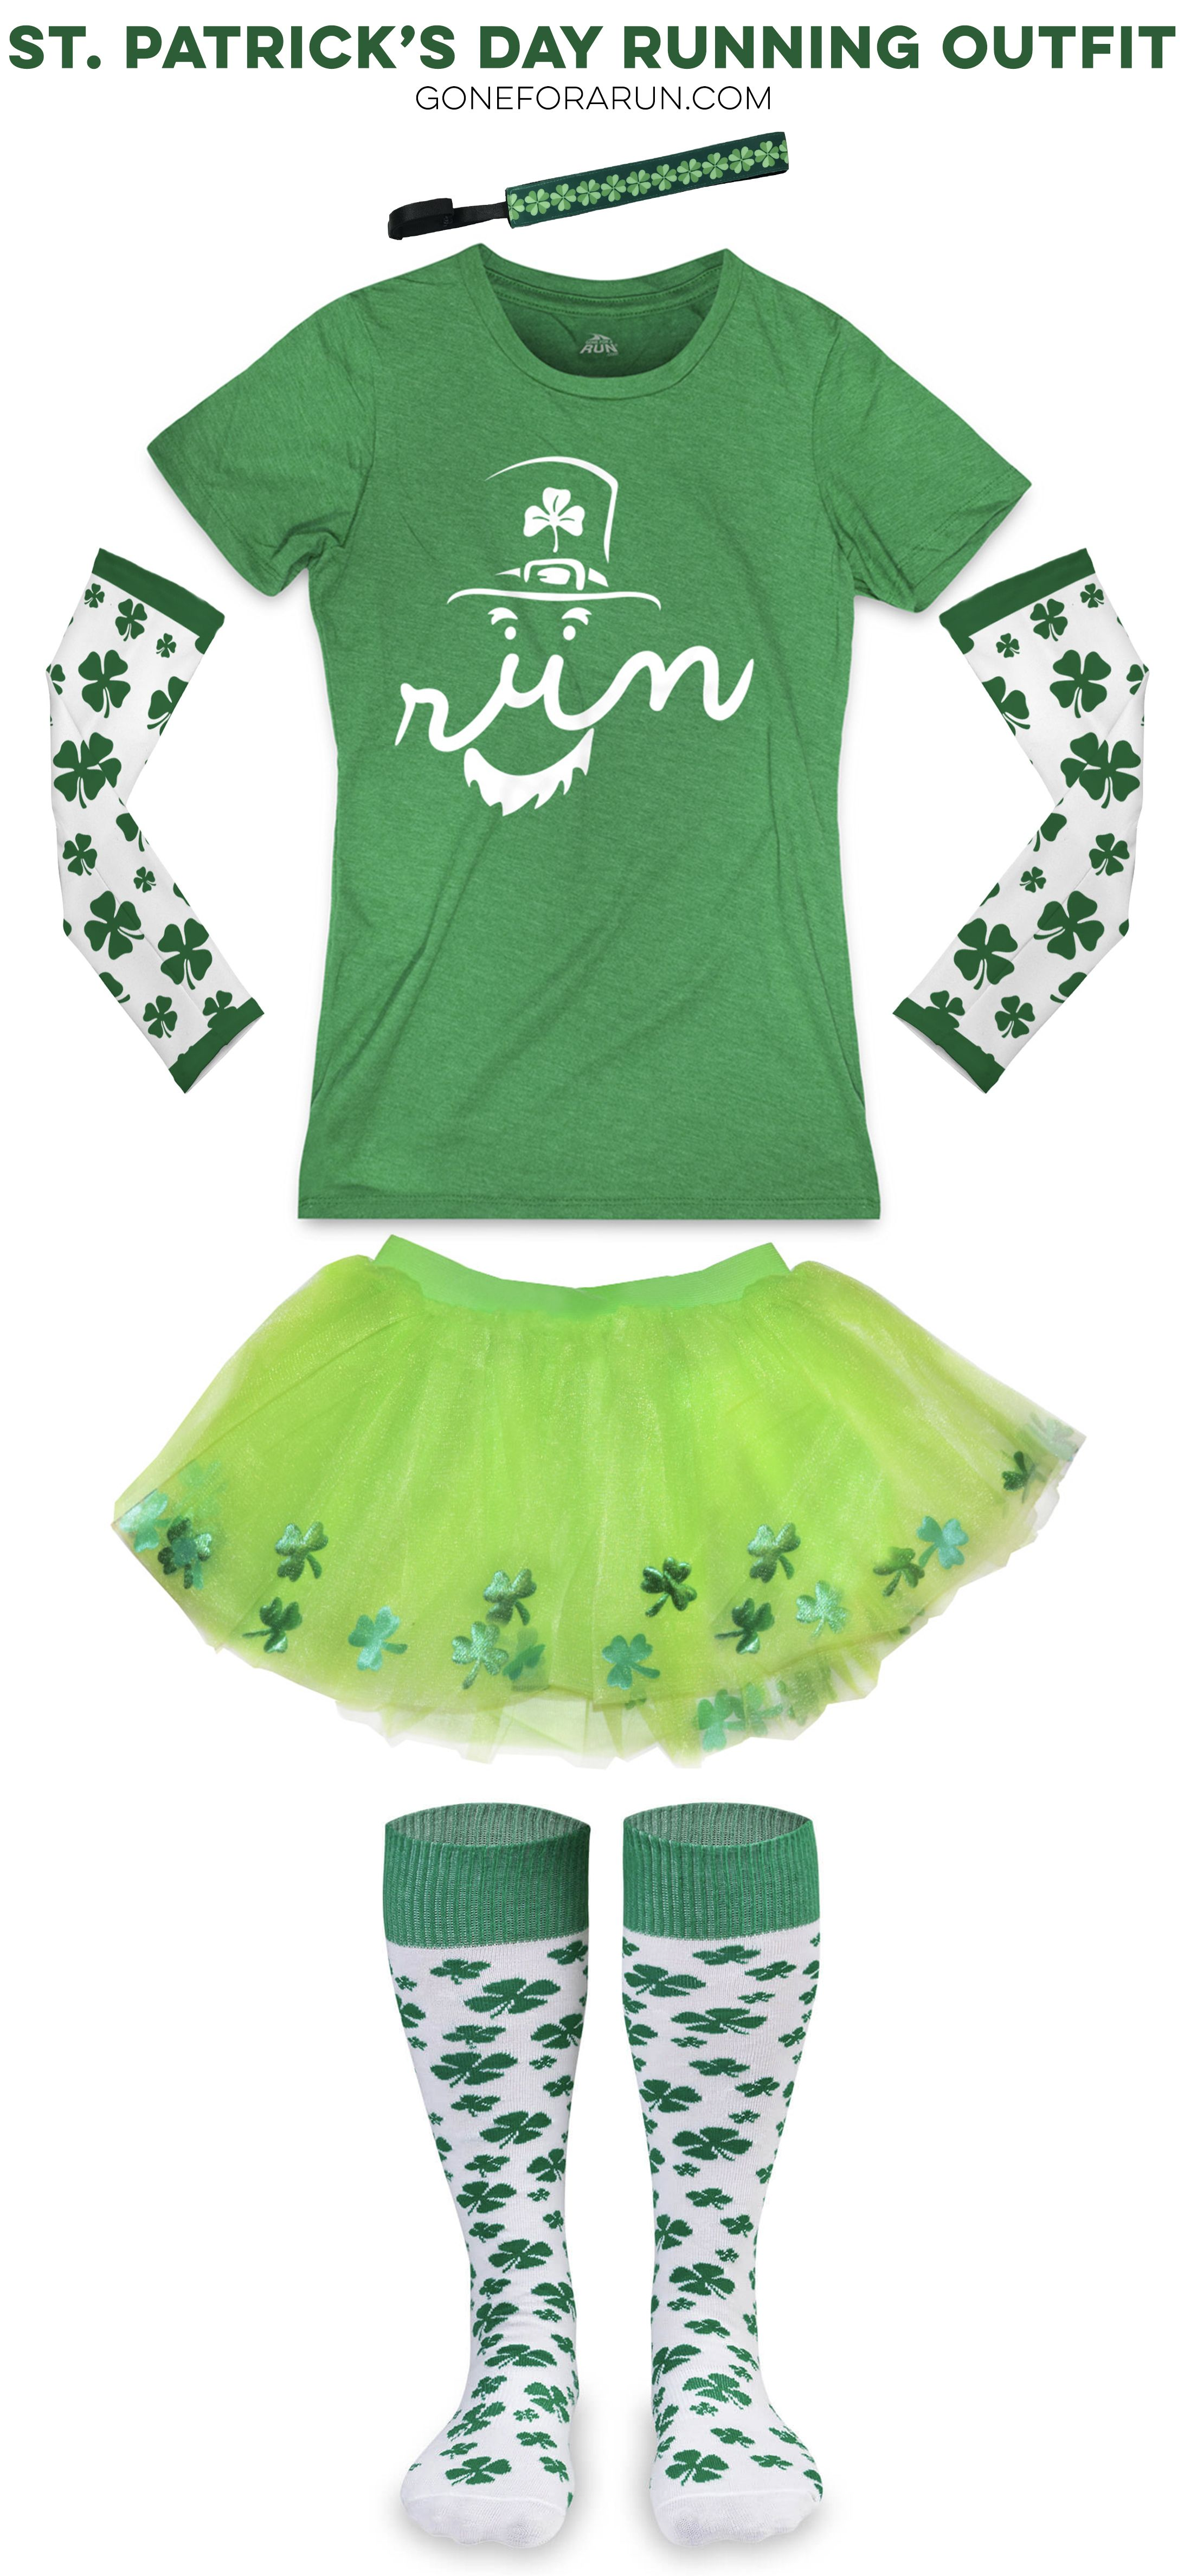 c0e338668 Get in the green mood! This running outfit idea is perfect for St ...